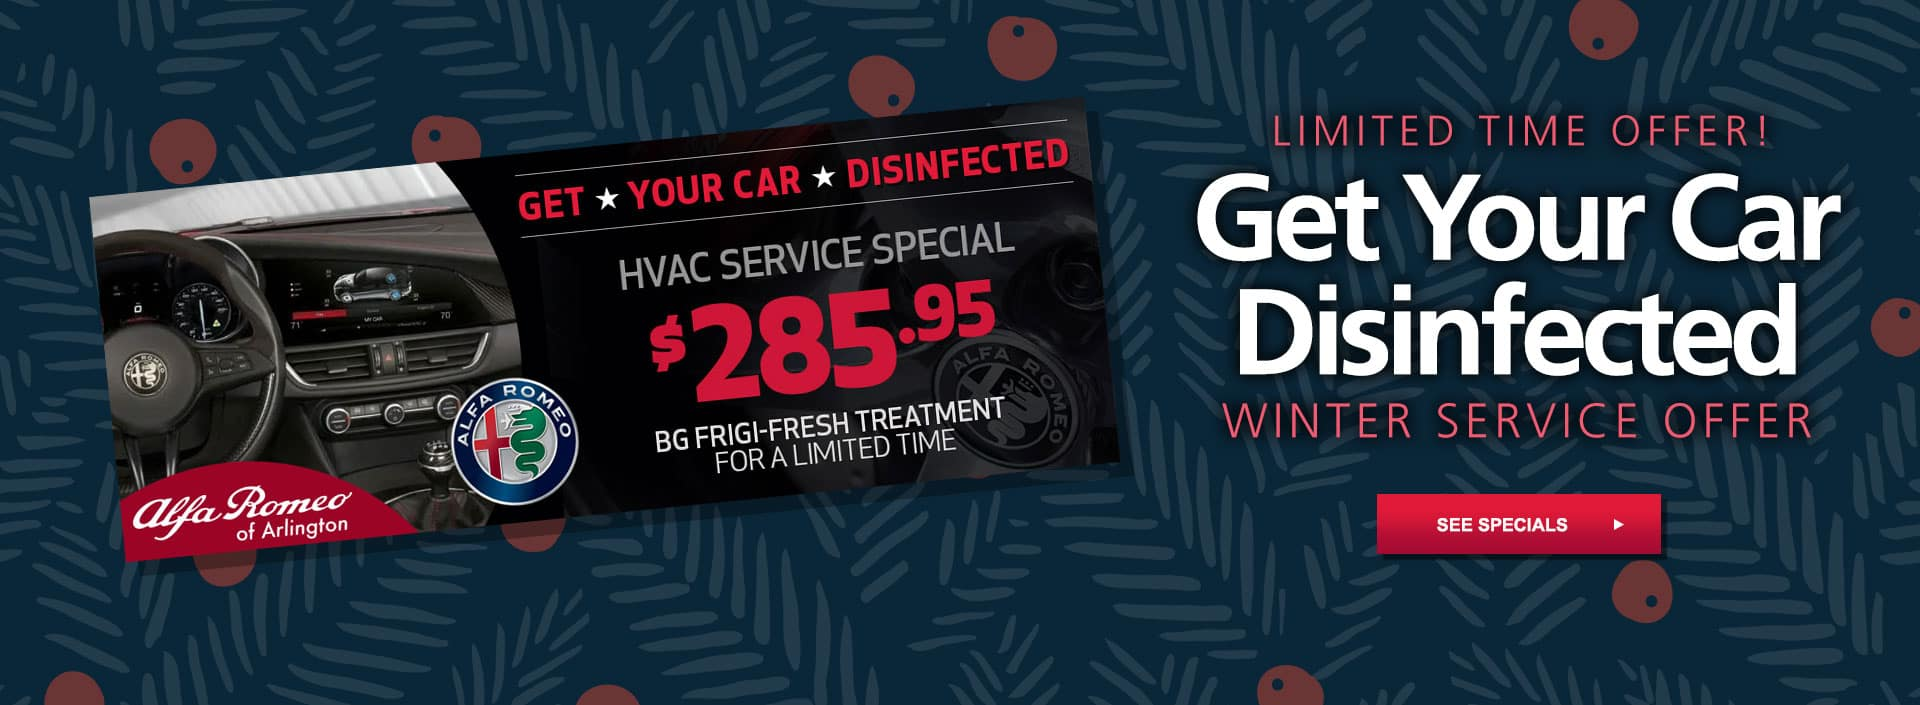 Get your car disinfected